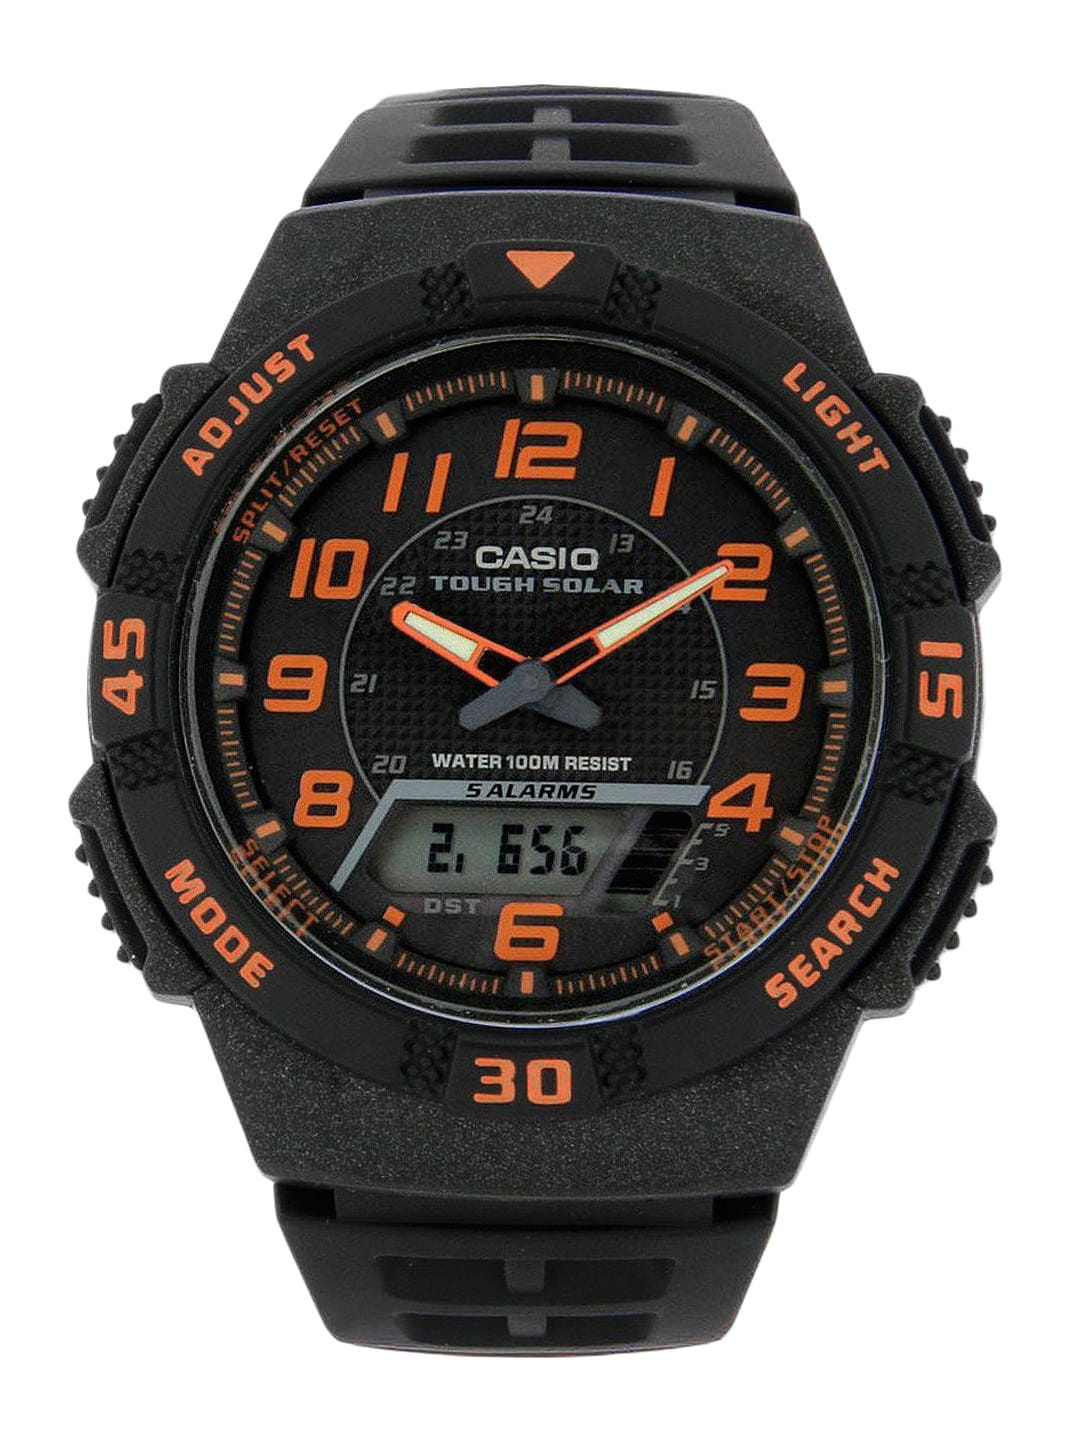 a2898838044f Casio Solar Watches - Buy Casio Solar Watches Online in India